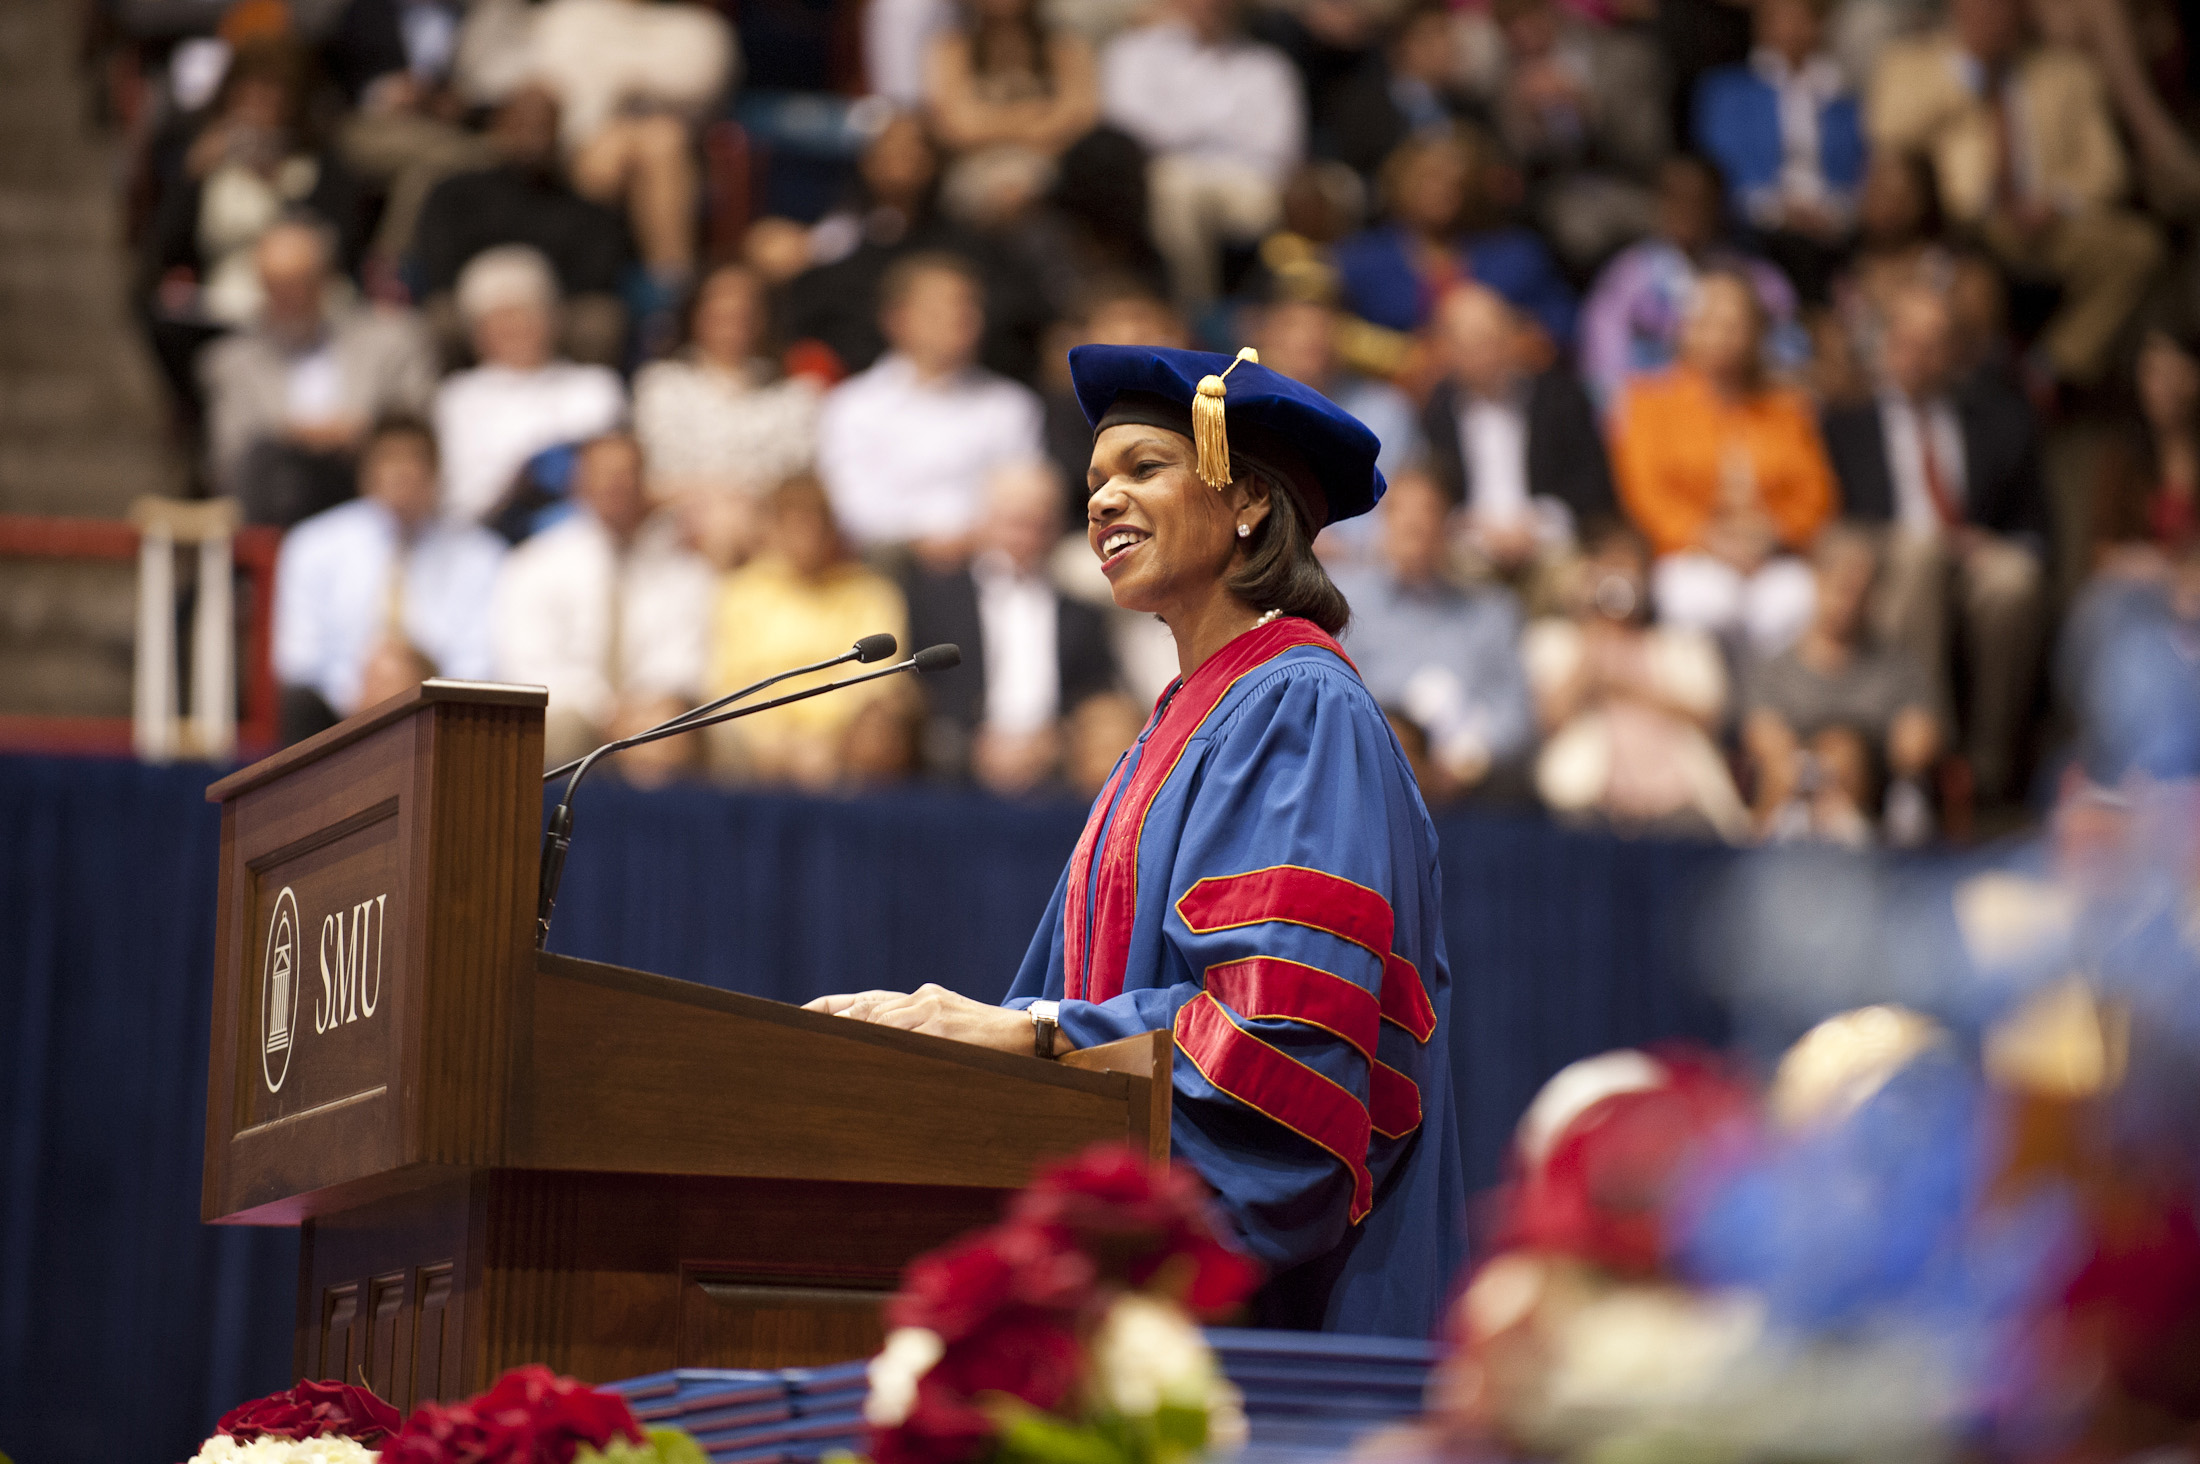 Condoleezza Rice at SMU Commencement on 12 May 2012.